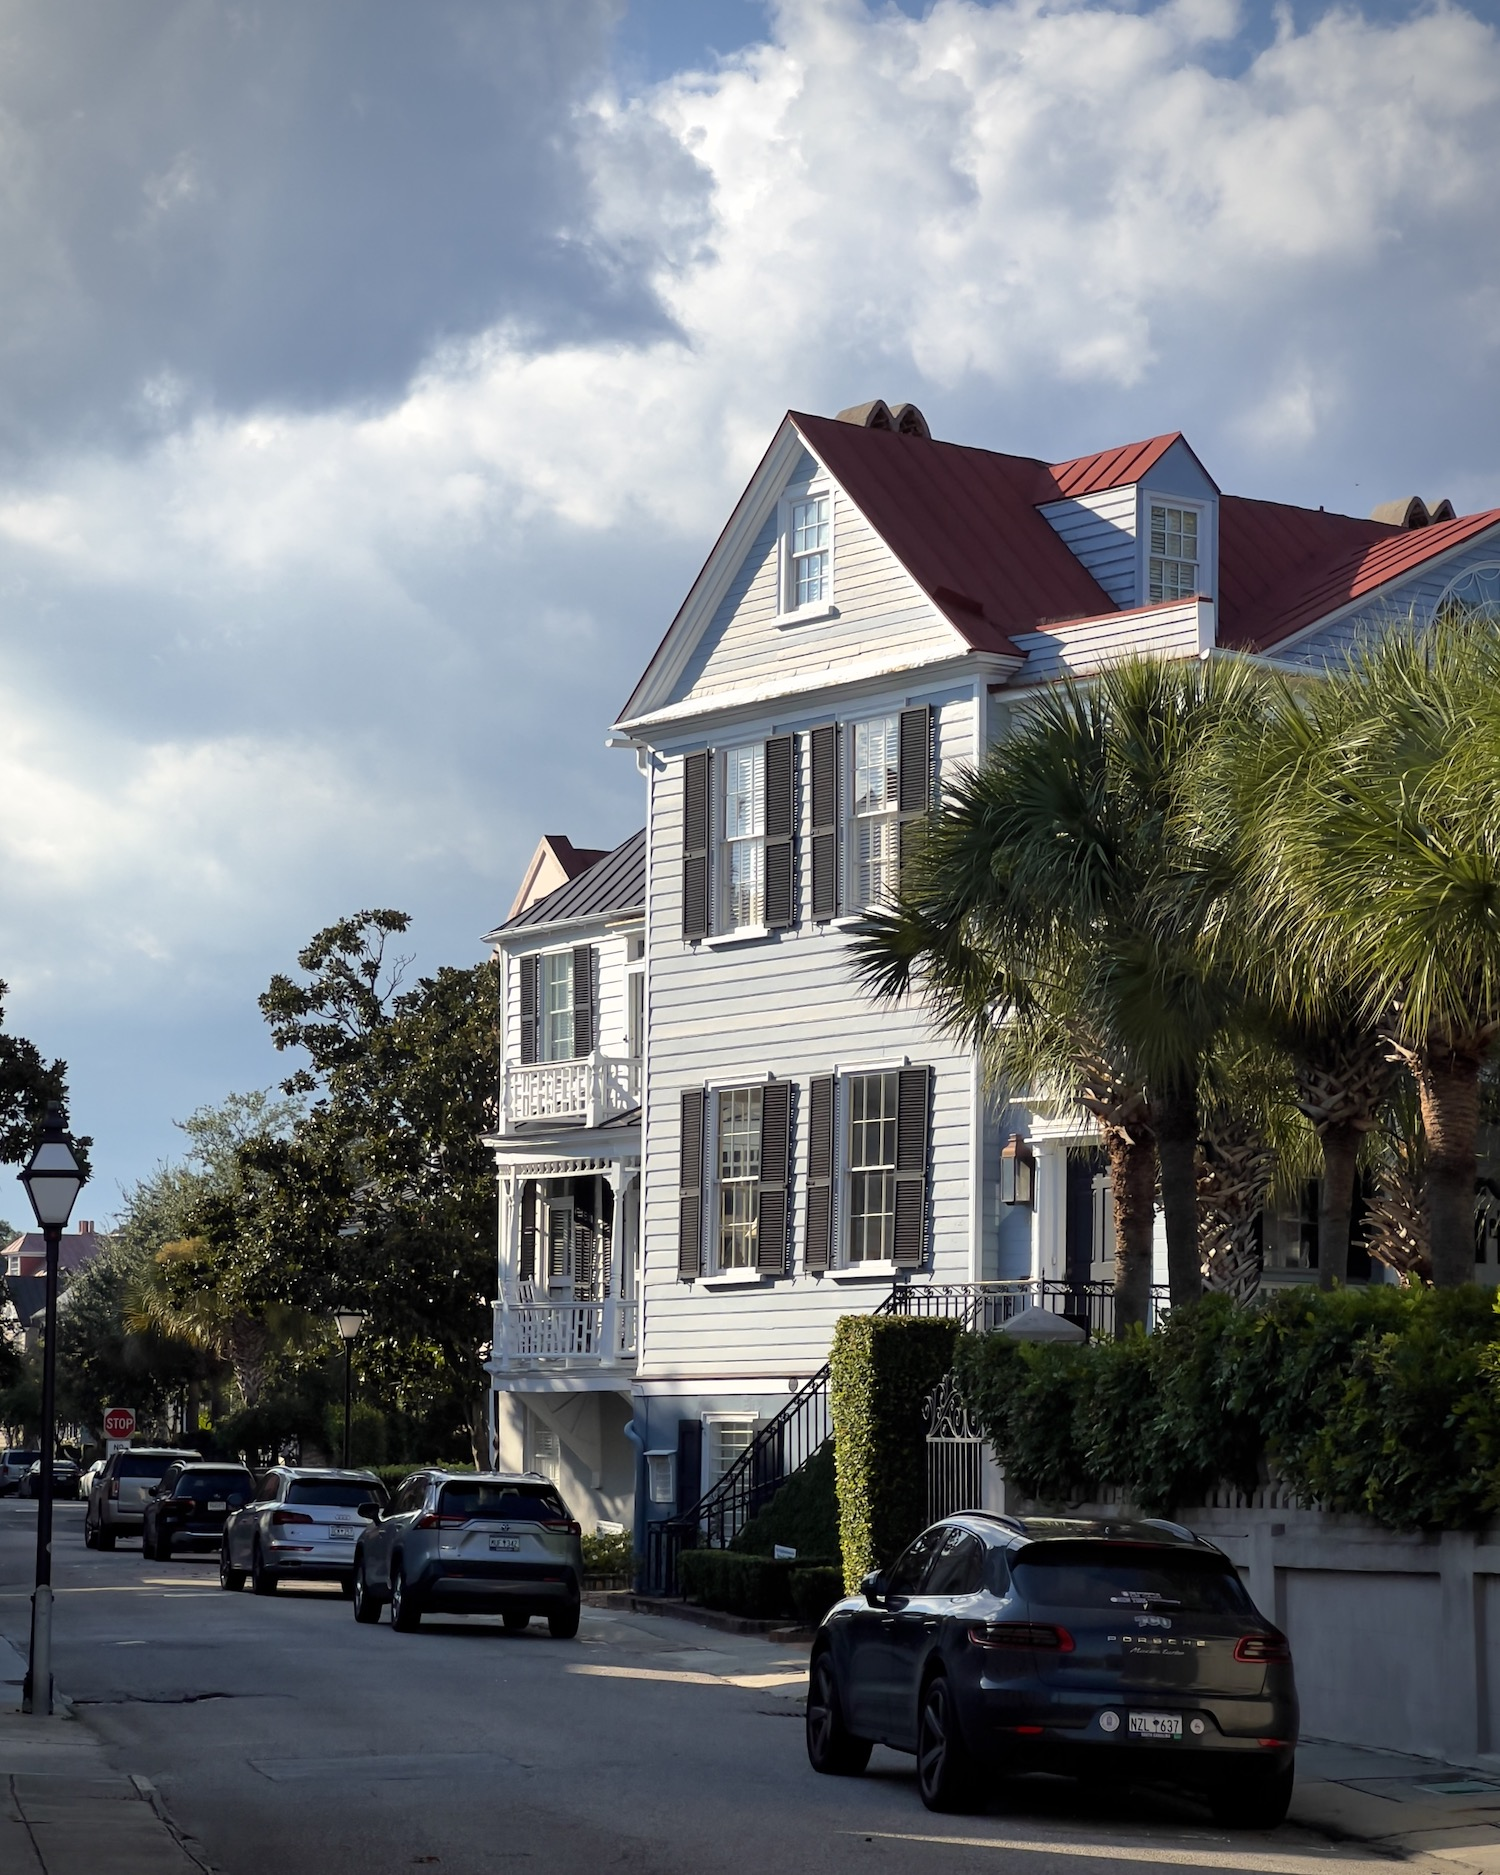 Just a random old house in Charleston, SC with some cool sunlight hitting its facade and dramatic clouds in the sky